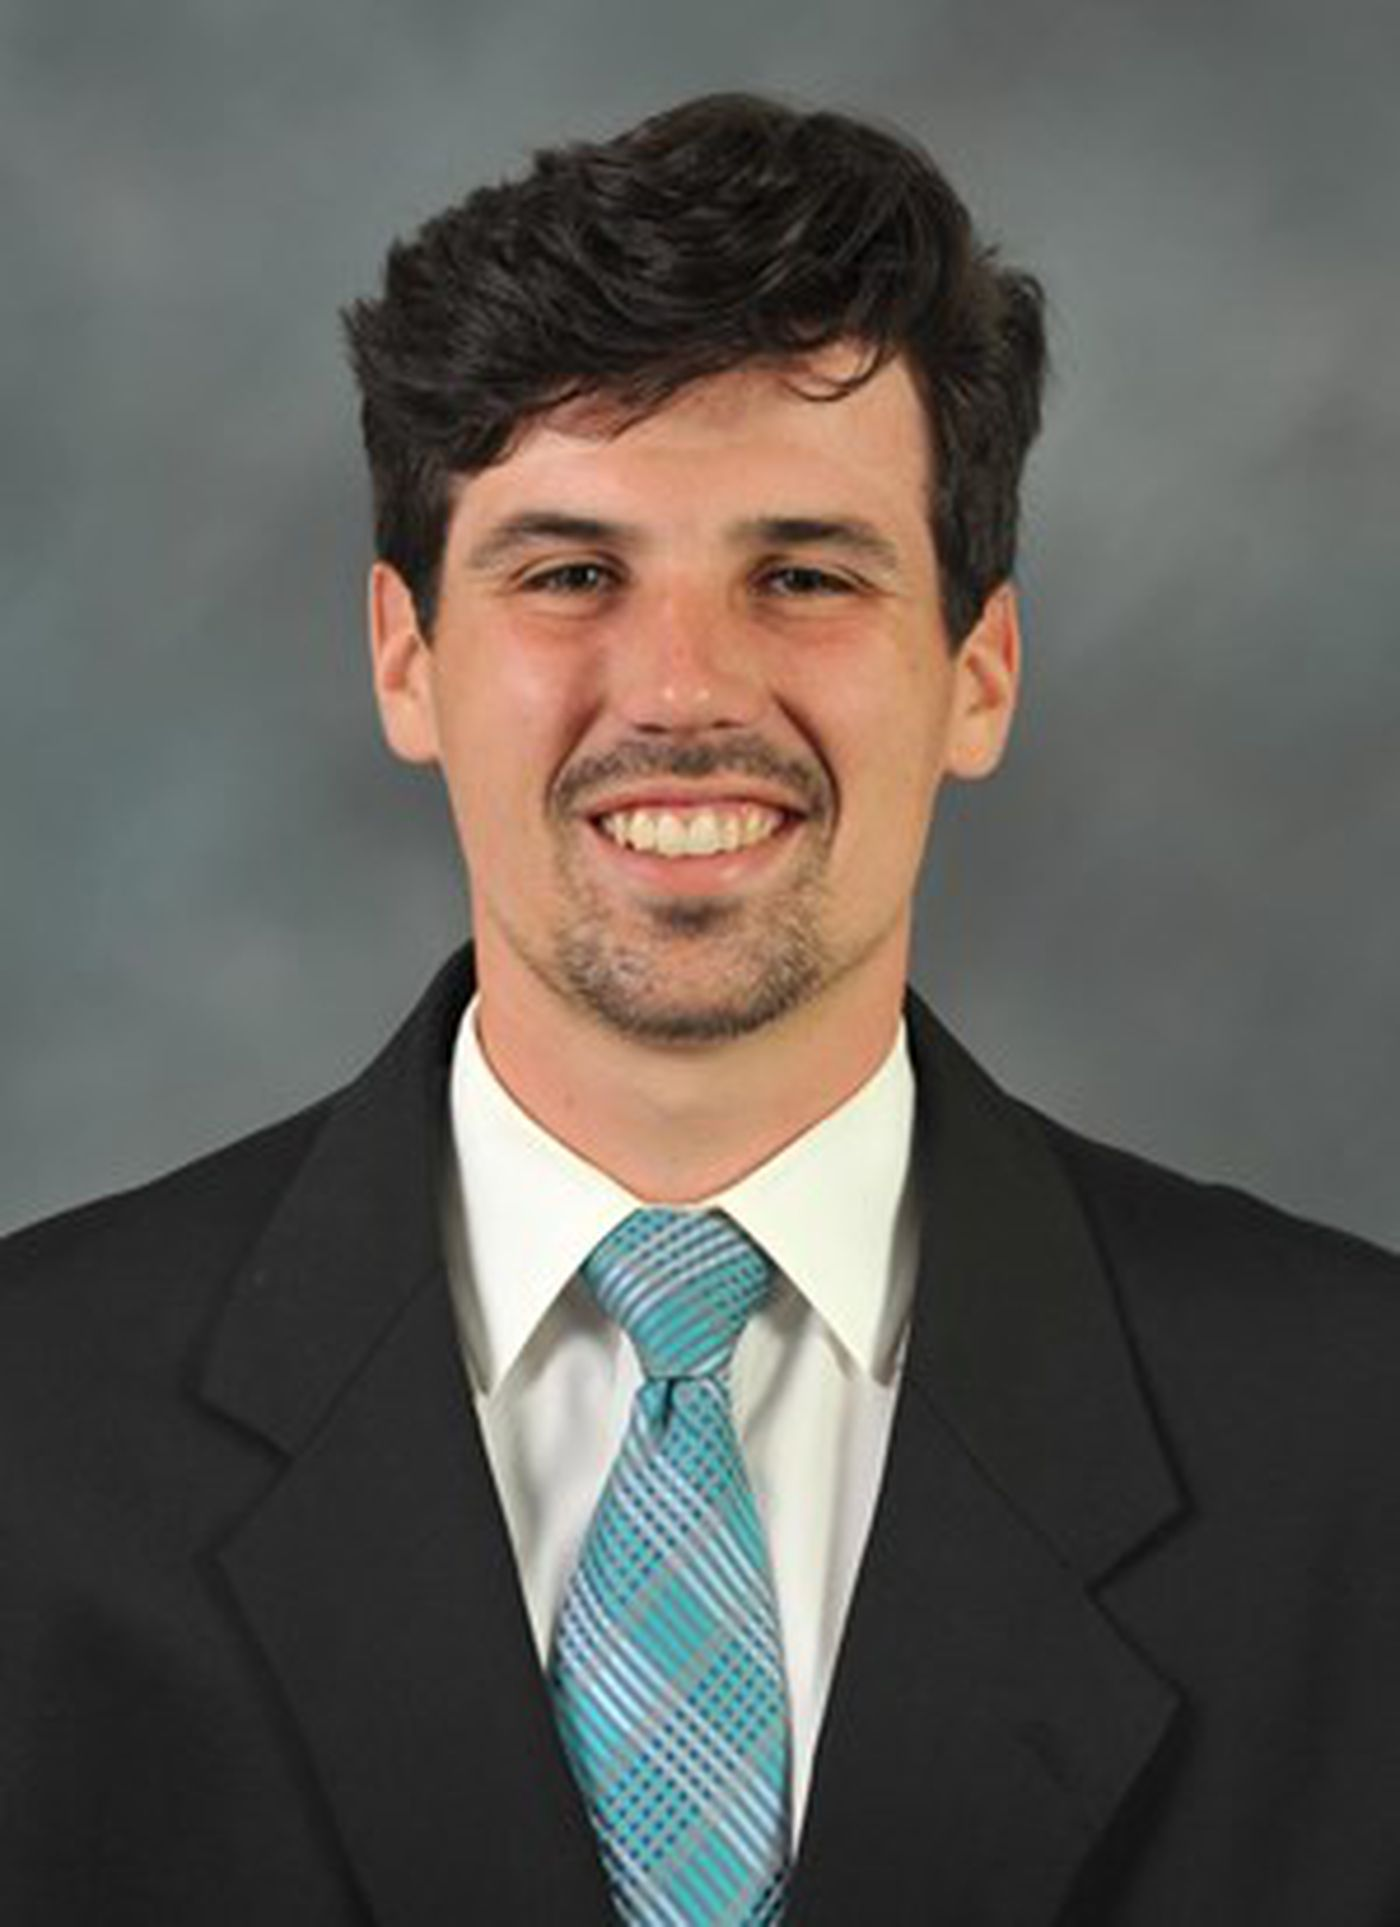 Former Ccu Football Player Charged With Dui After Overnight Hit And Run Kills Pedestrian